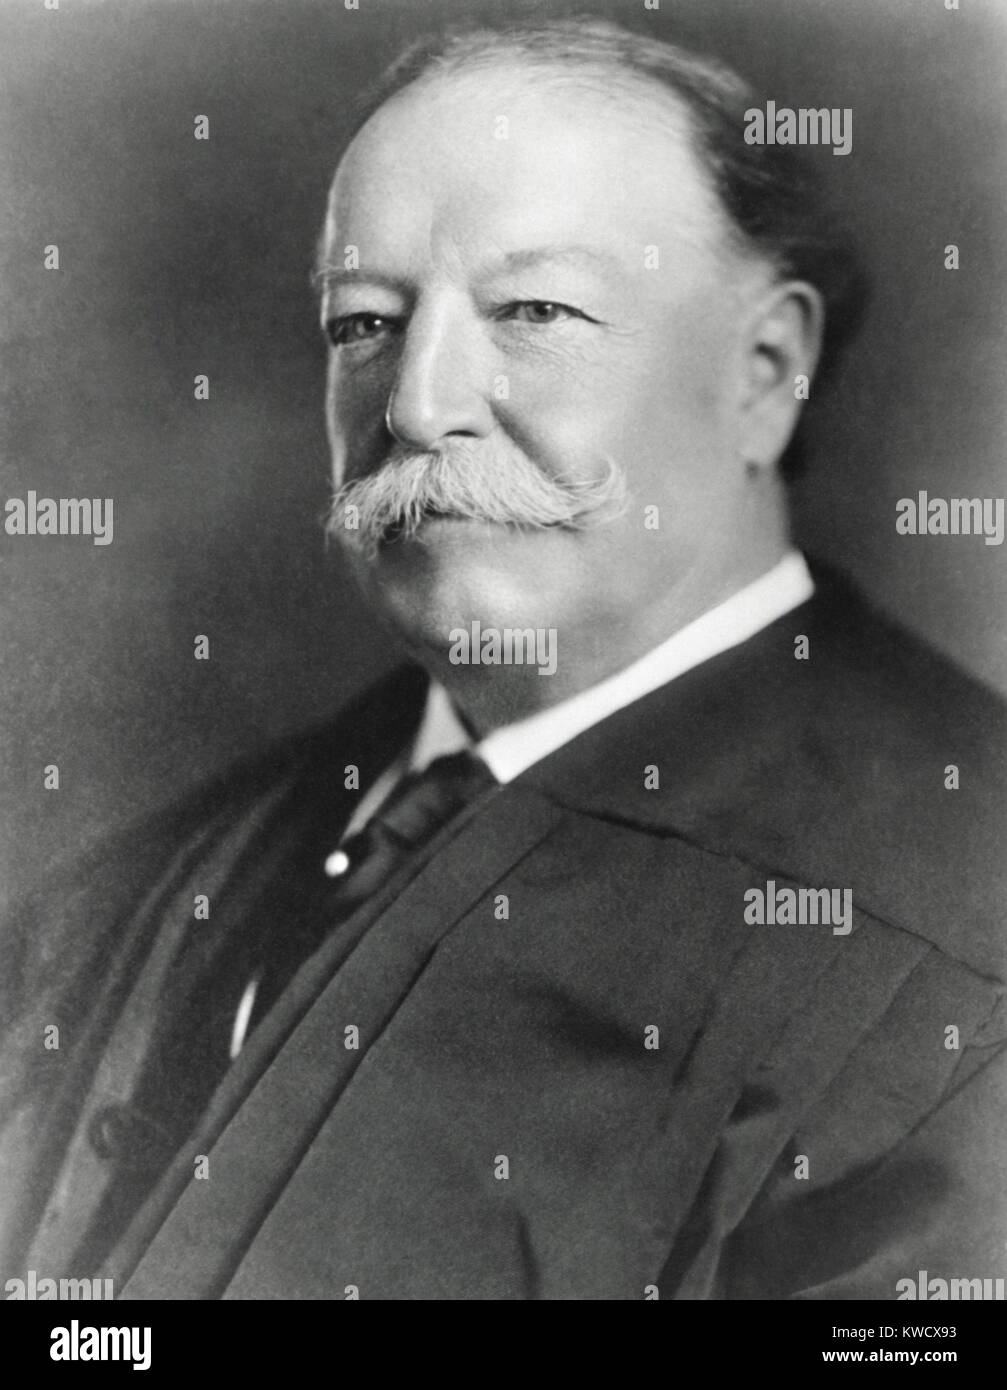 Former President William H. Taft, in judicial robes as Chief Justice of the Supreme Court, c. 1921 (BSLOC 2017 2 Stock Photo